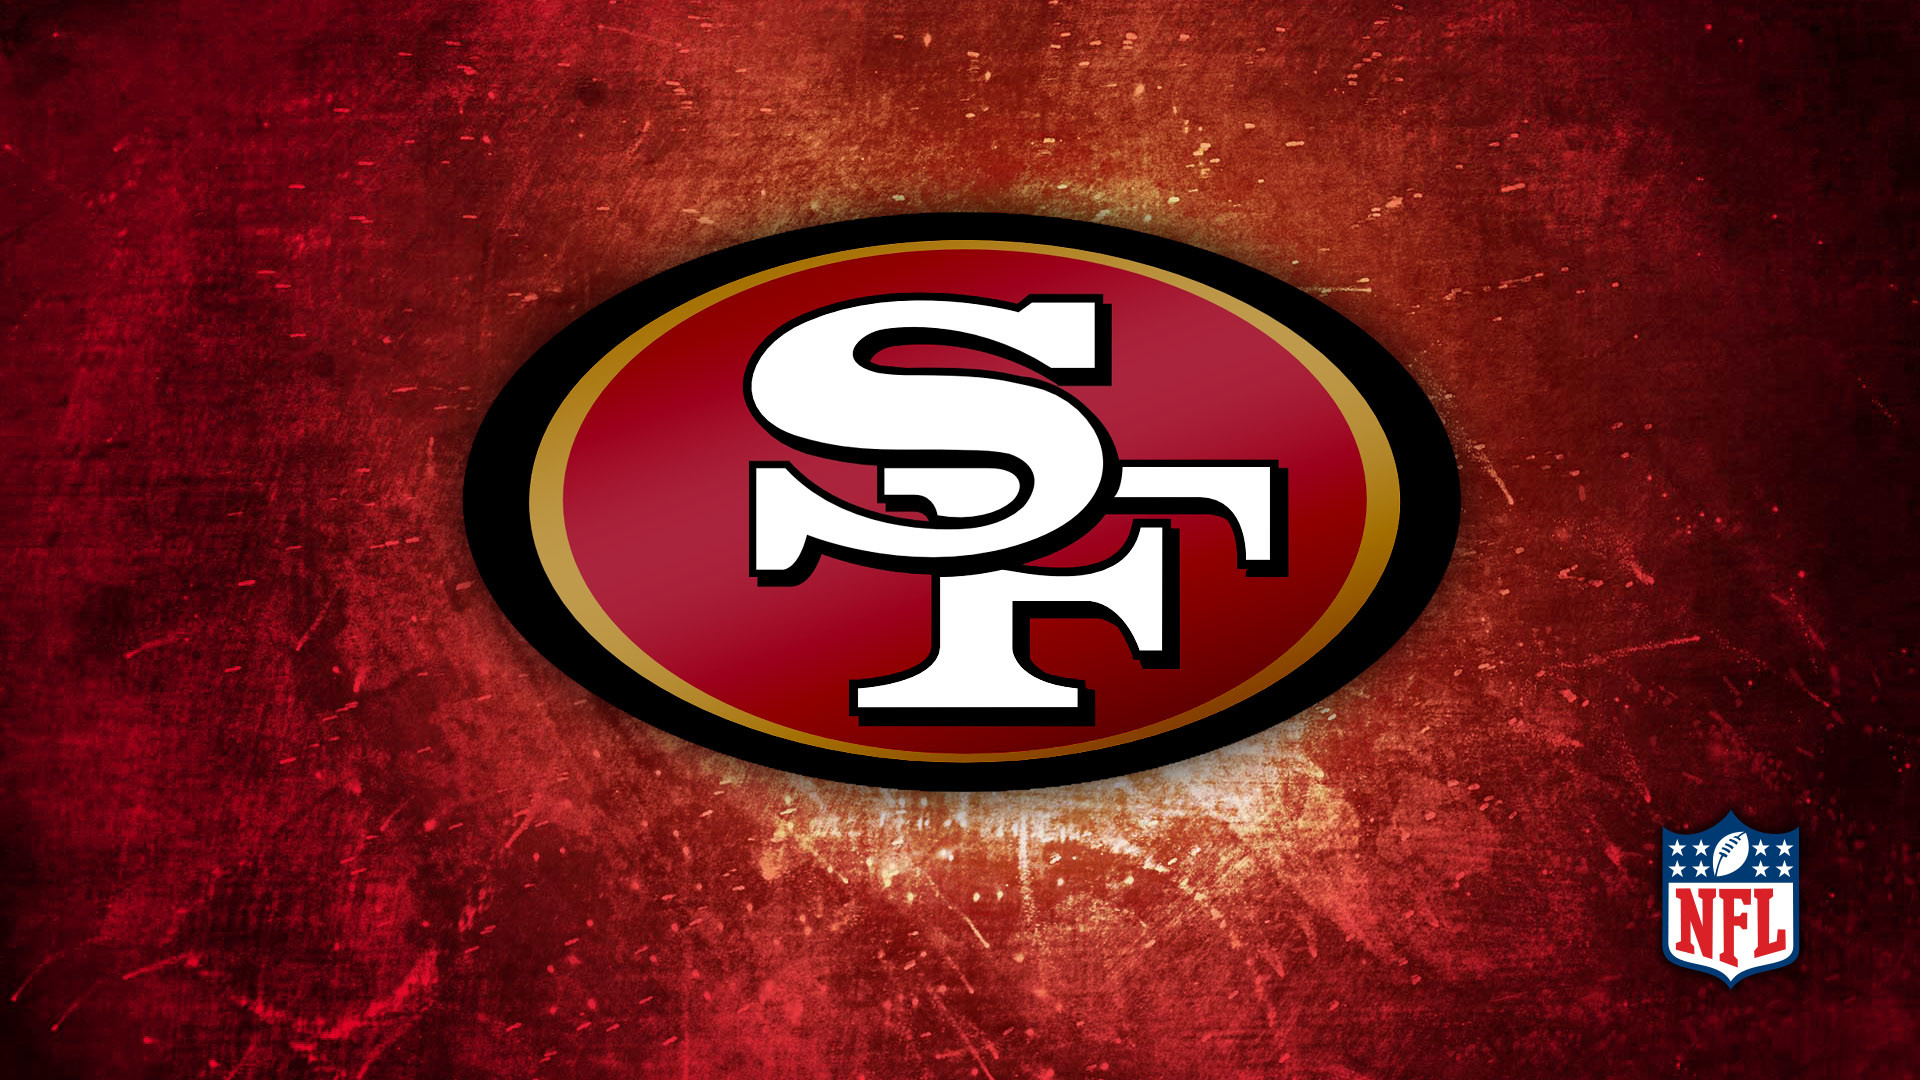 49ers Wallpapers Your Phone Wallpapertag